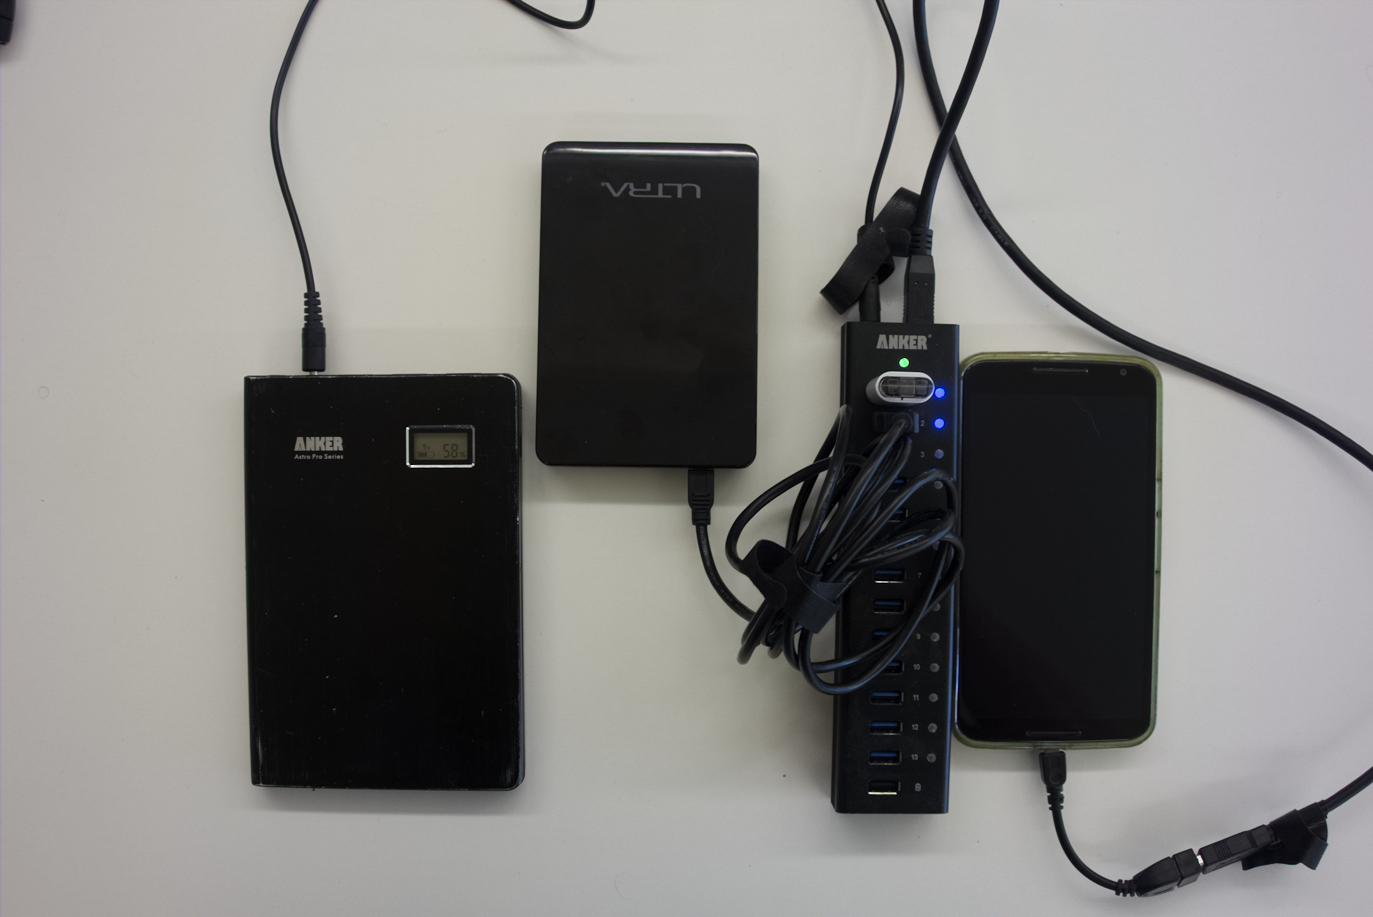 an external battery pack powering a USB hub with a disk drive, a flash drive, and a phone plugged into it.